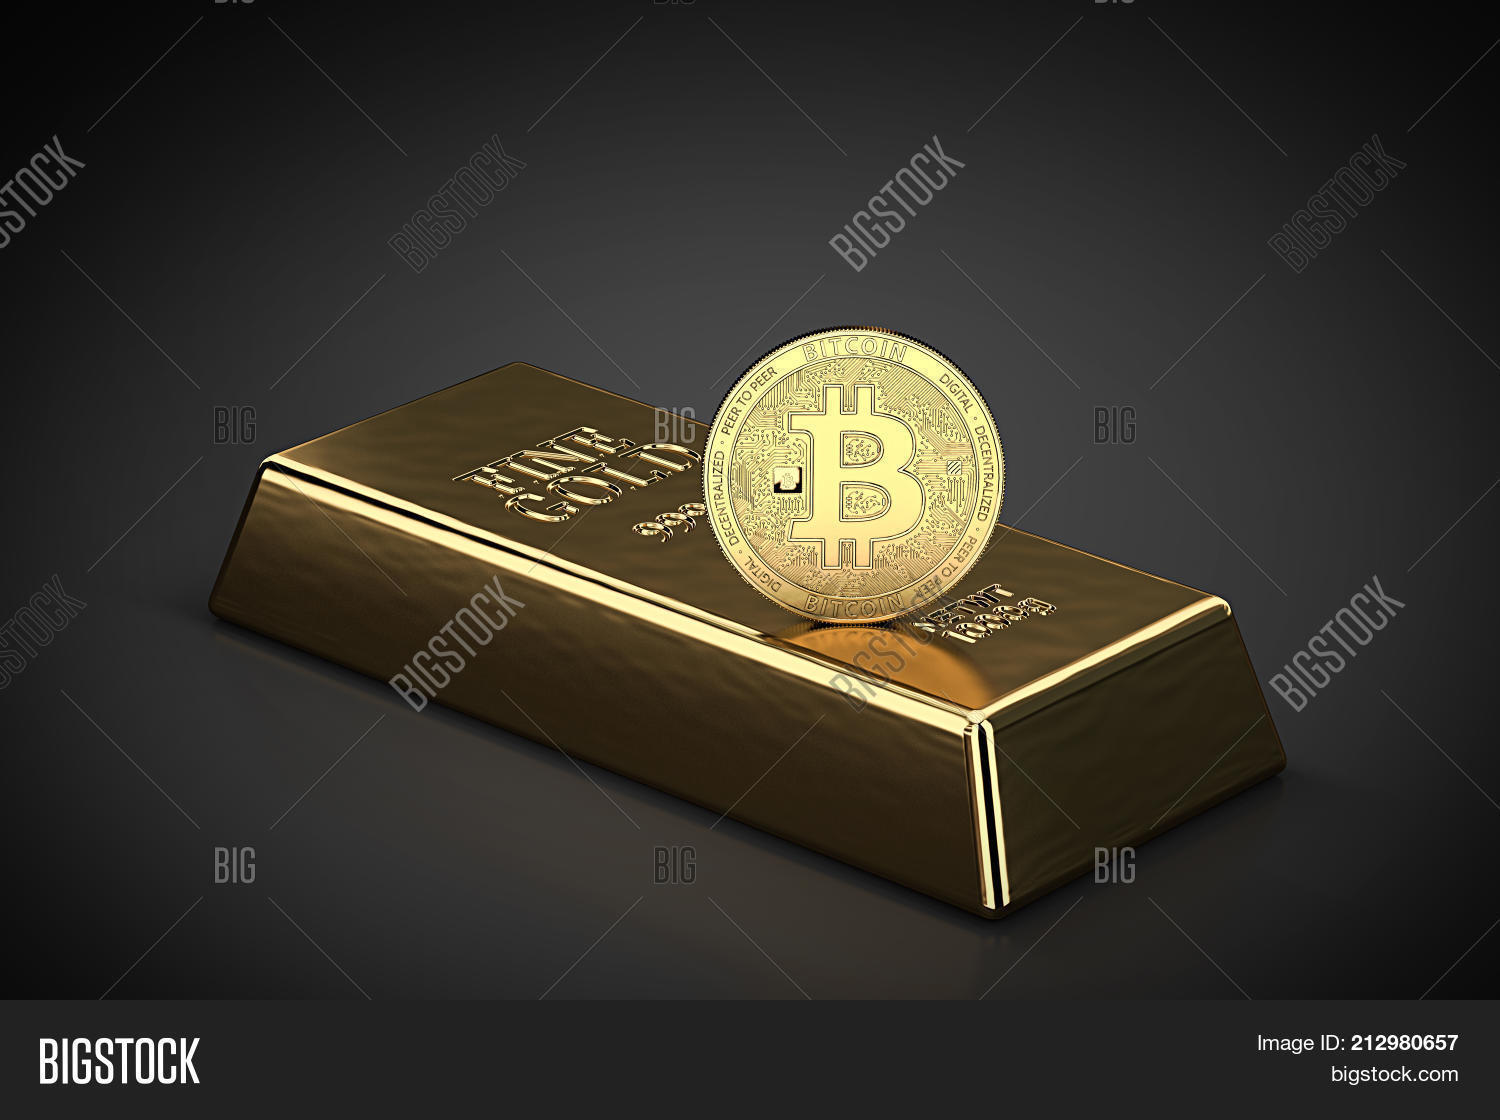 Golden bitcoin standing on gold image photo bigstock golden bitcoin standing on the gold ingot bullion bar as symbol of domination on biocorpaavc Images